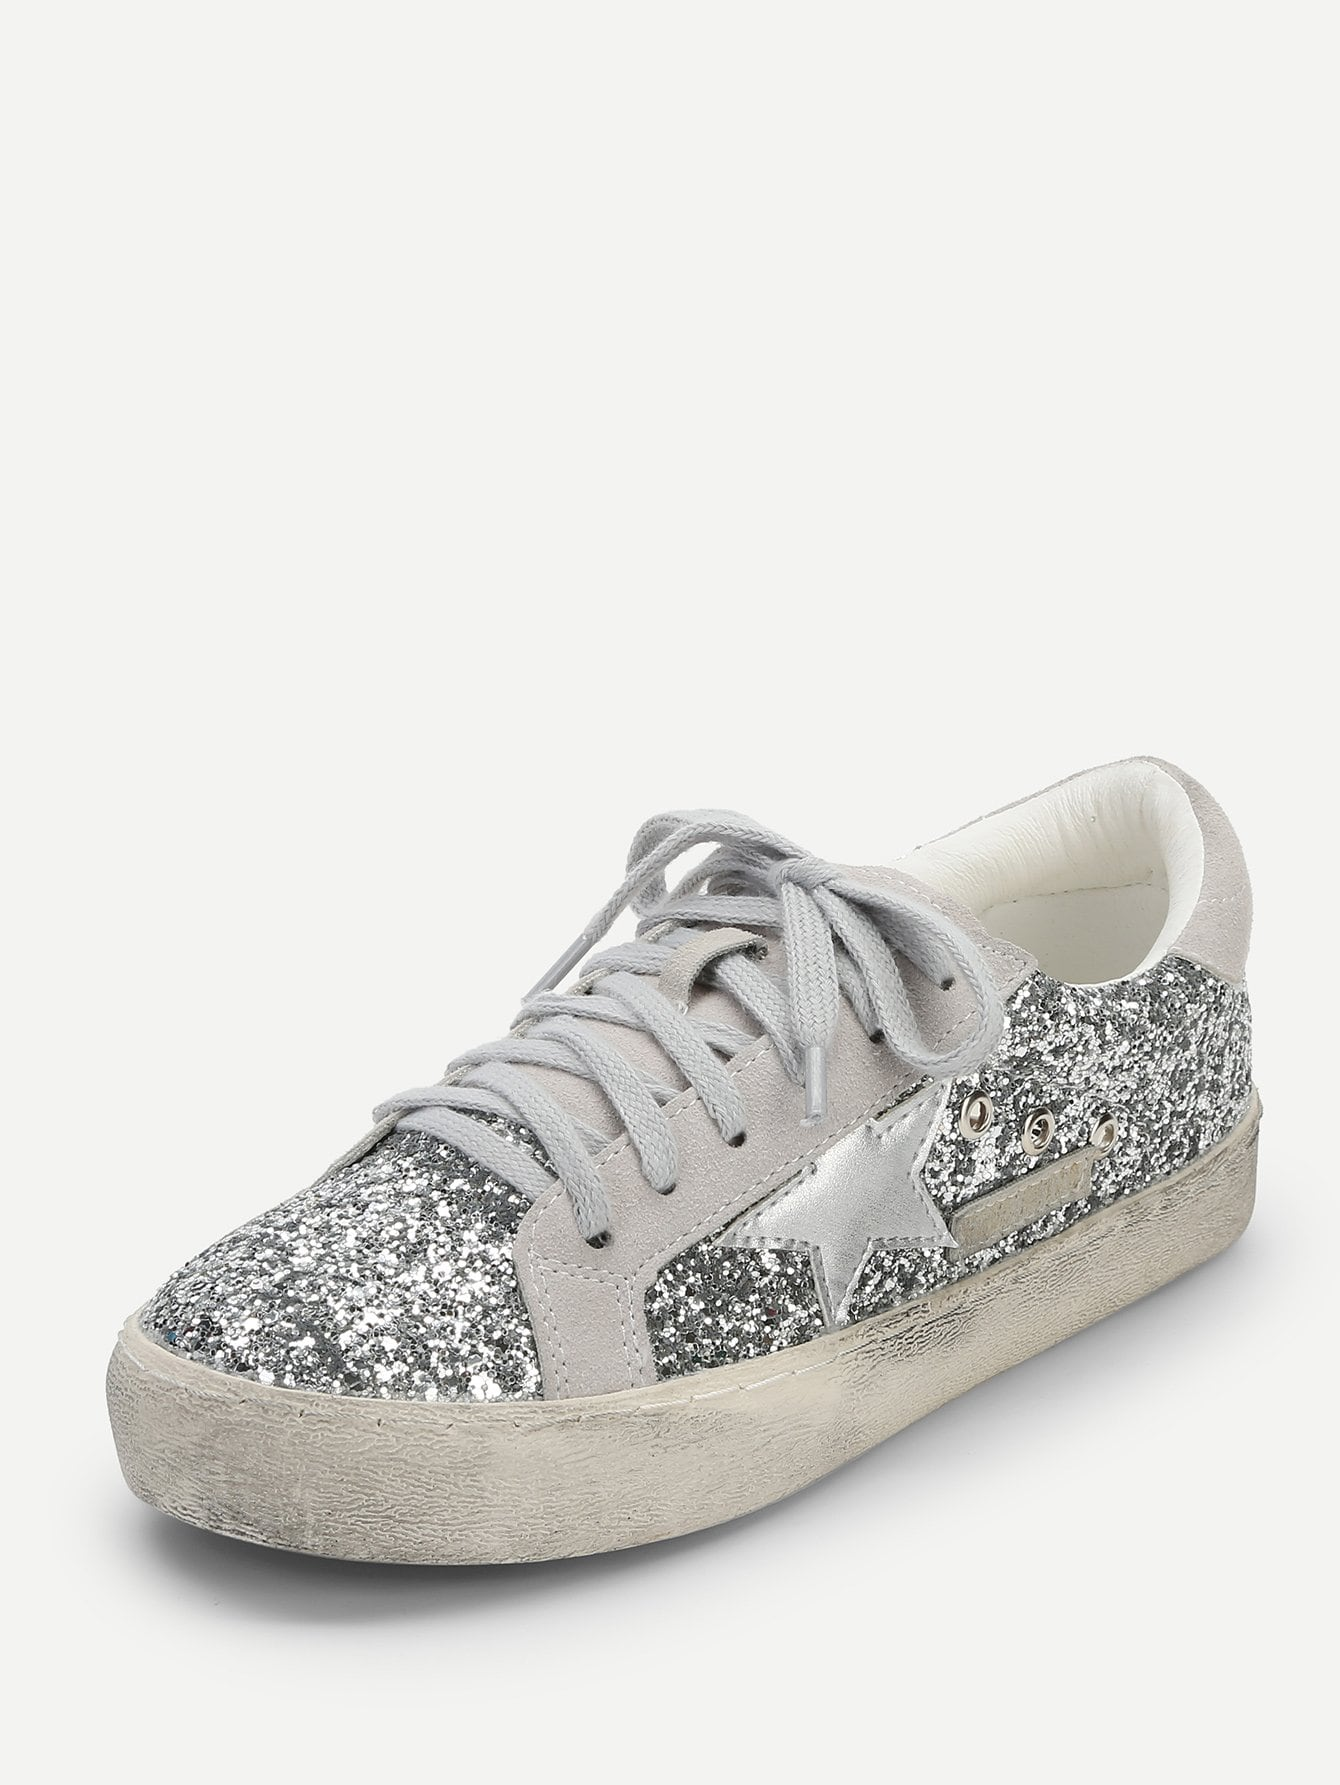 Star Detail Glitter Lace Up Sneakers